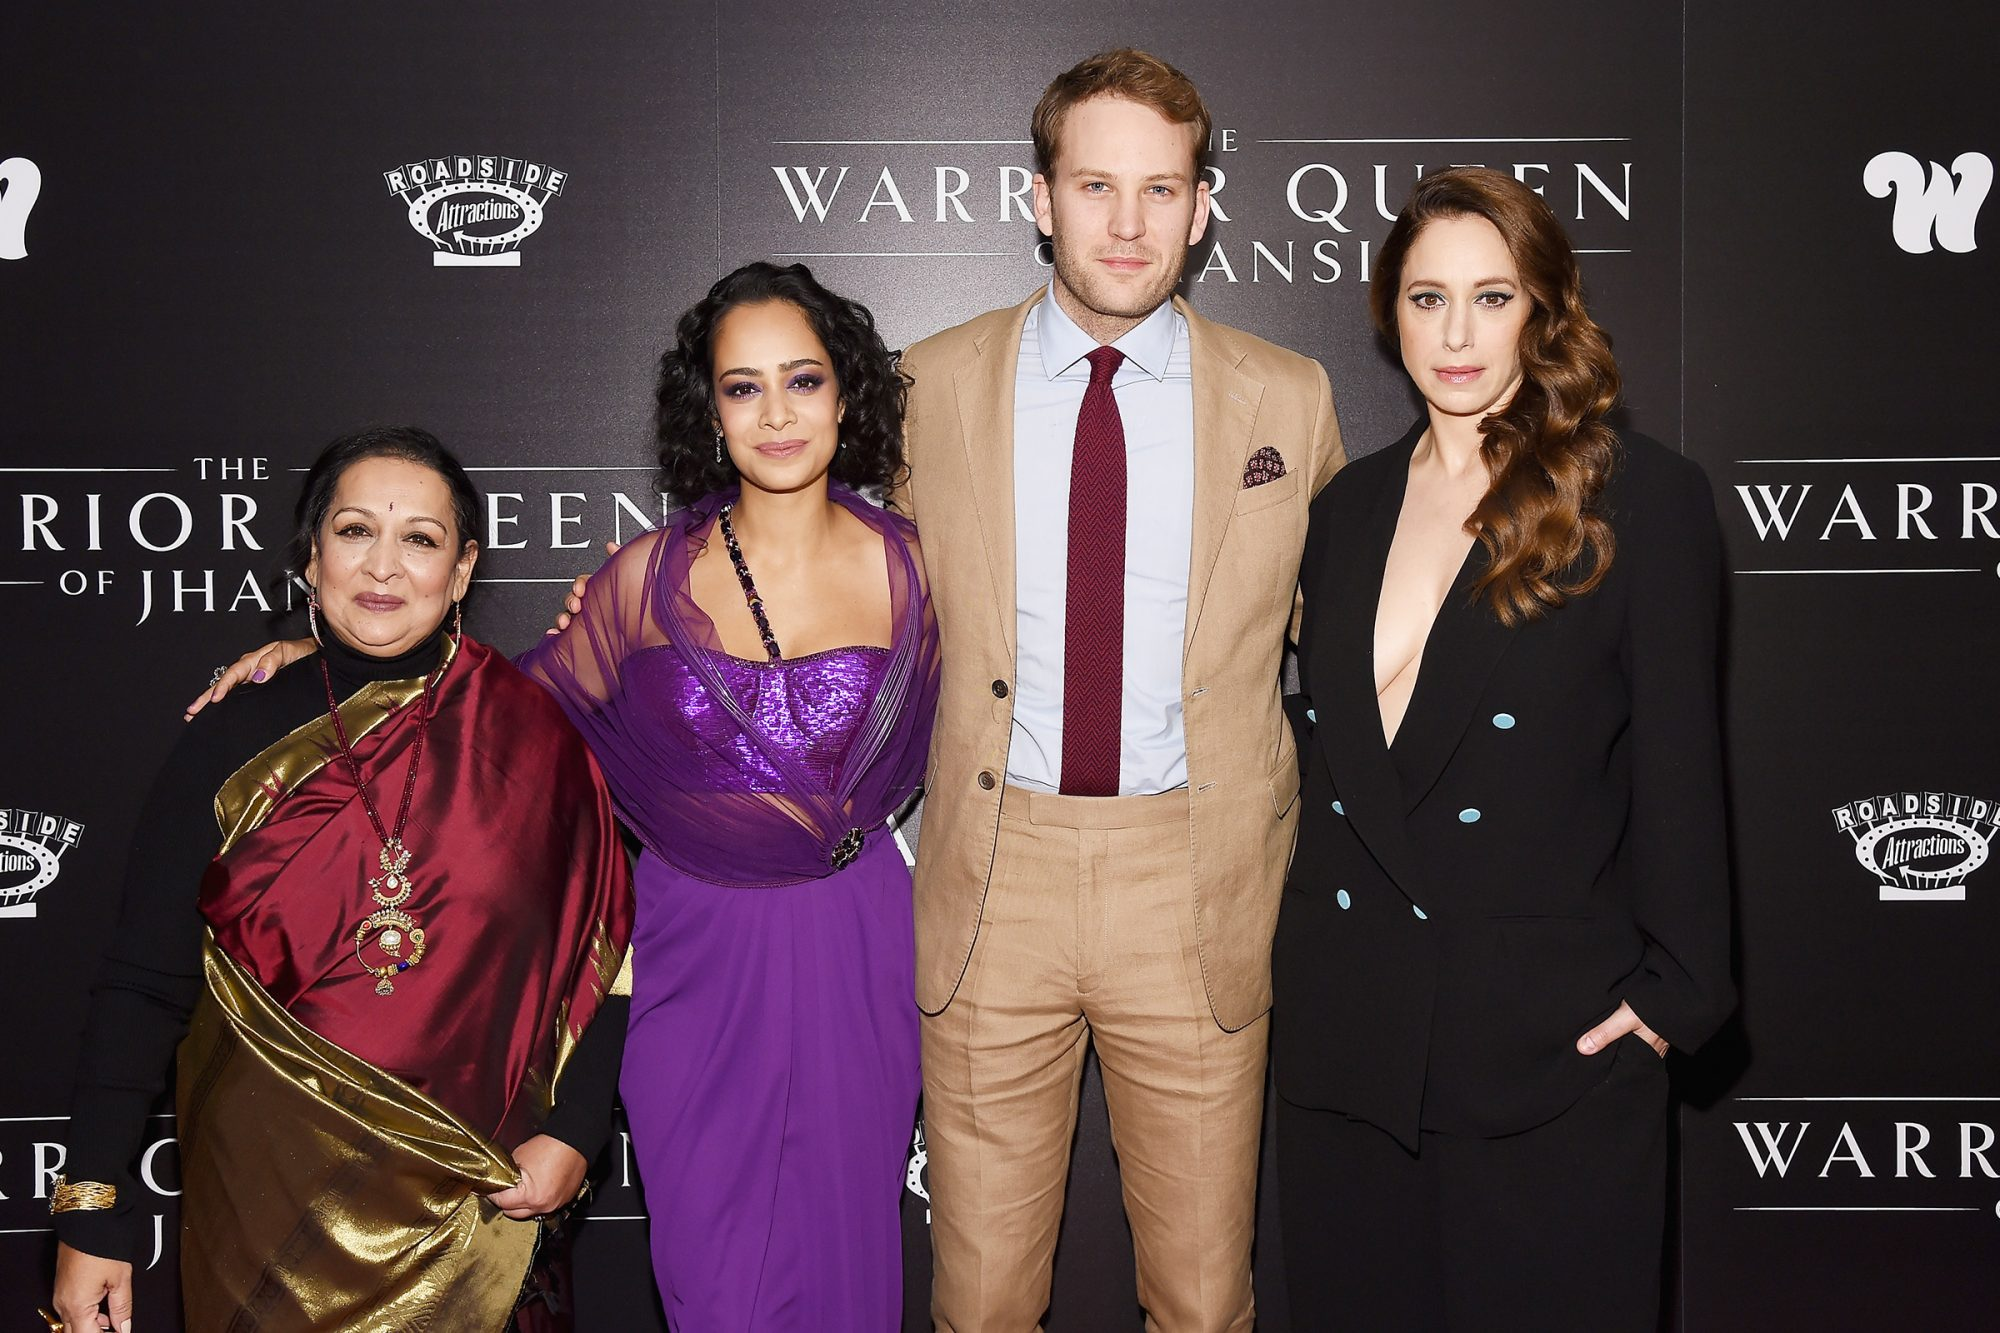 """Producer, director and co-screenwriter Swati Bhise, actress, executive producer and co-screenwriter Devika Bhise, actors Ben Lamb and Jodhi May attend """"The Warrior Queen of Jhansi"""" World Premiere hosted by The Wing at Metrograph on November 13, 2019 in New York"""